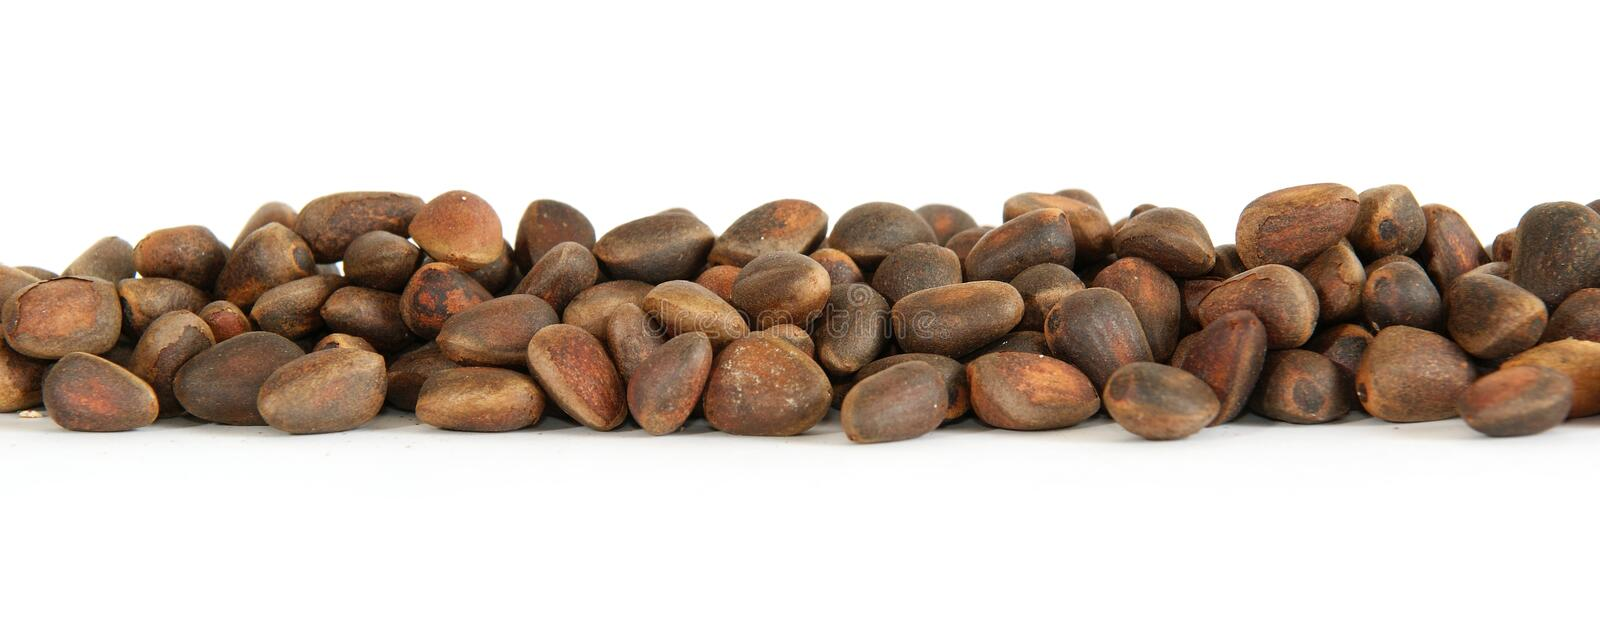 Pine nuts stock images